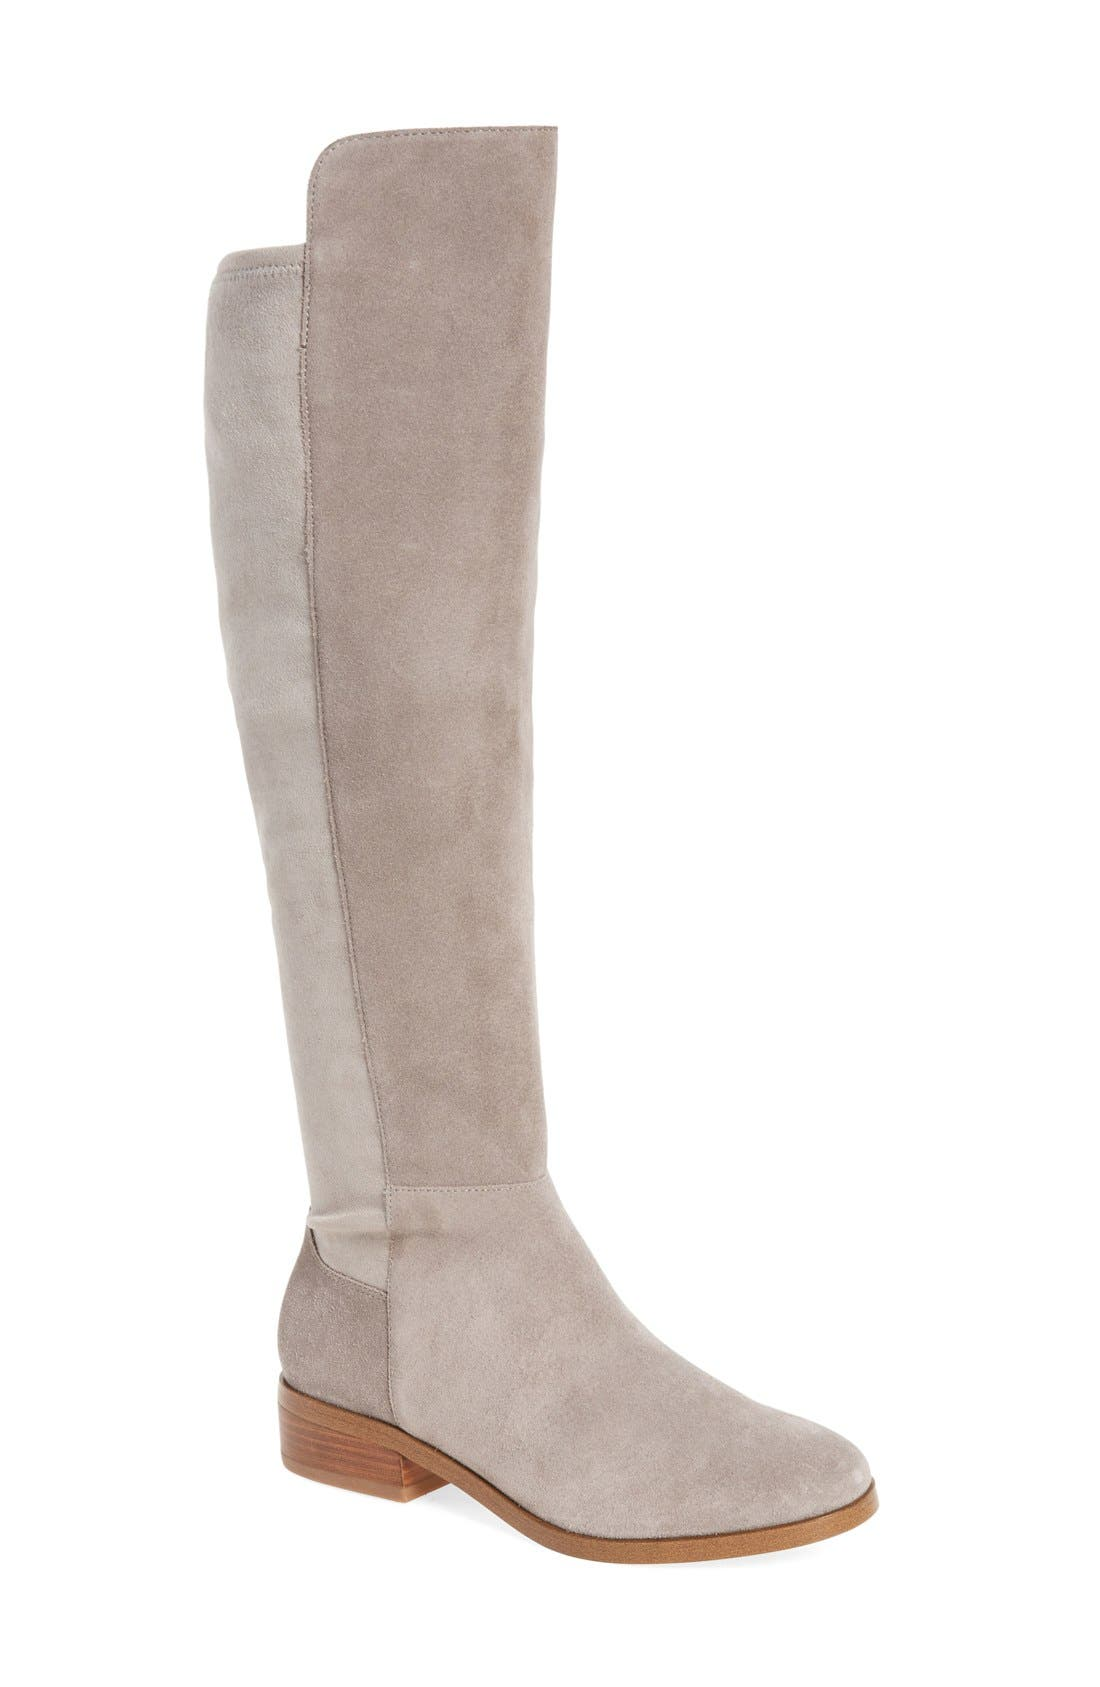 Alternate Image 1 Selected - Sole Society Calypso Over the Knee Boot (Women)